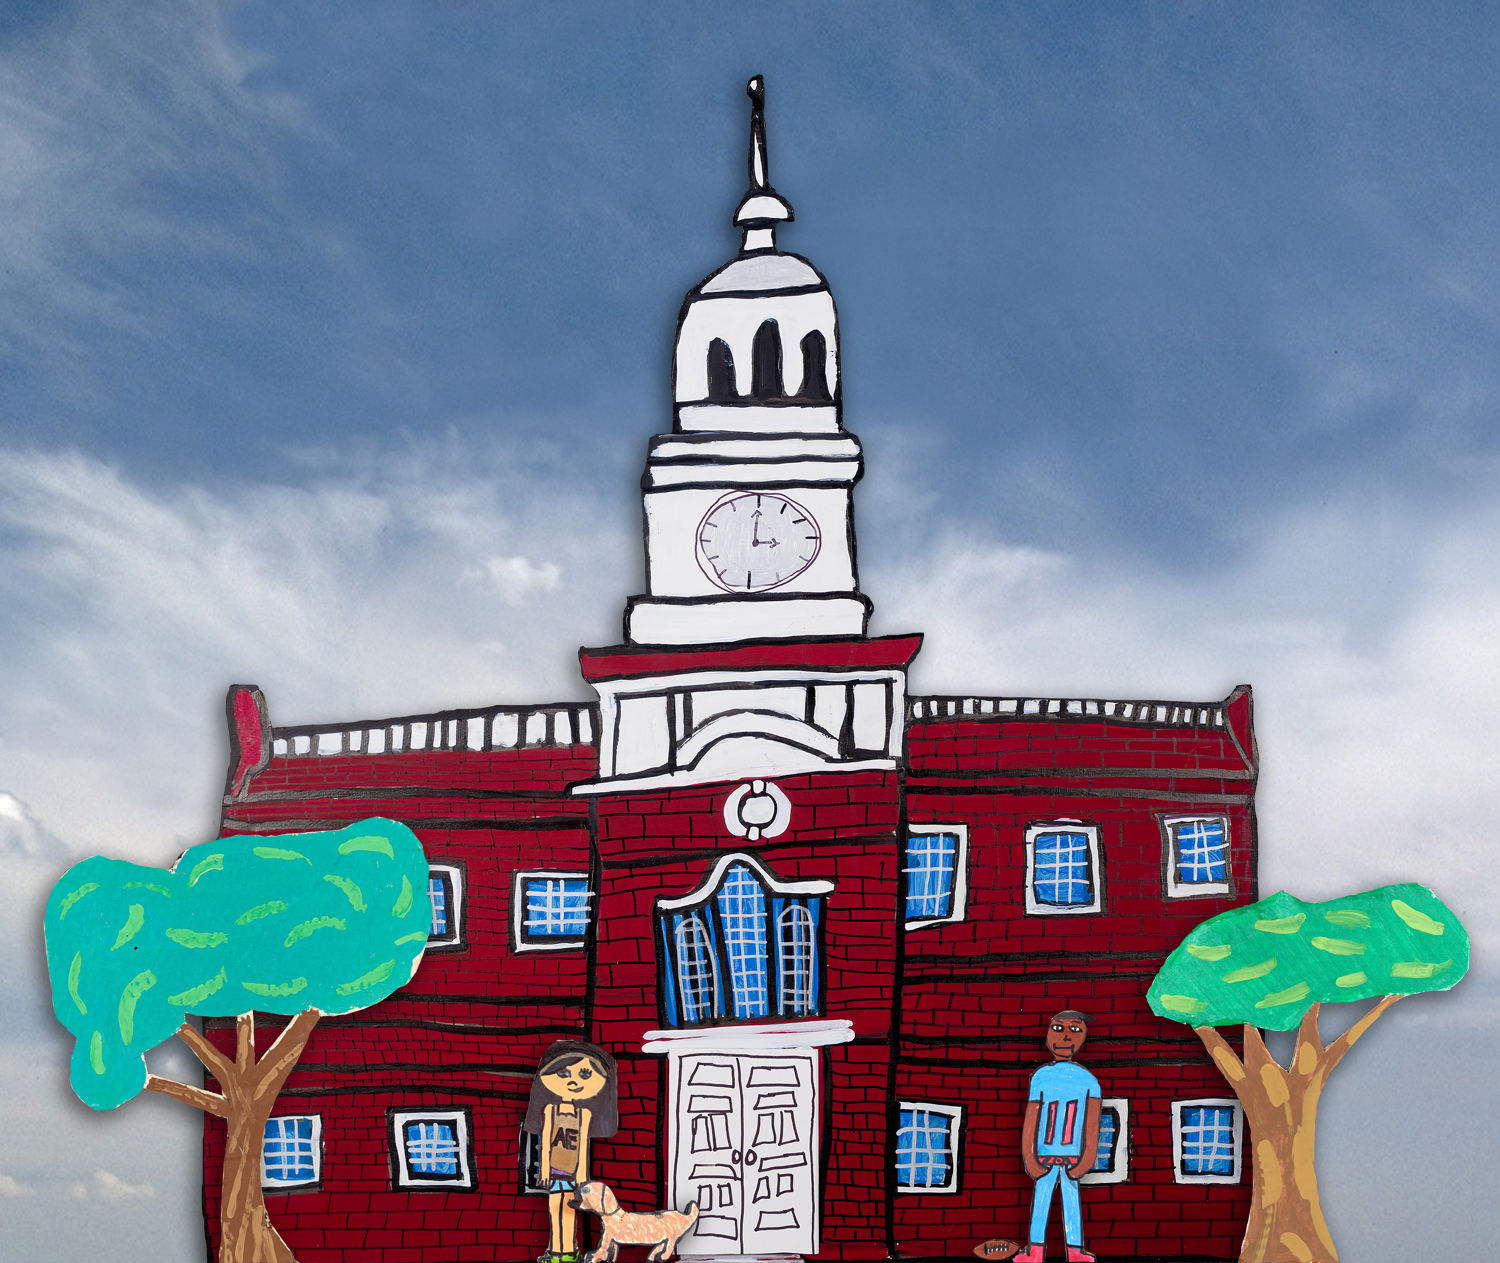 Fresh Artists, a local art program, has launched an online game celebrating Philly's architecture as a gift to DNC visitors.